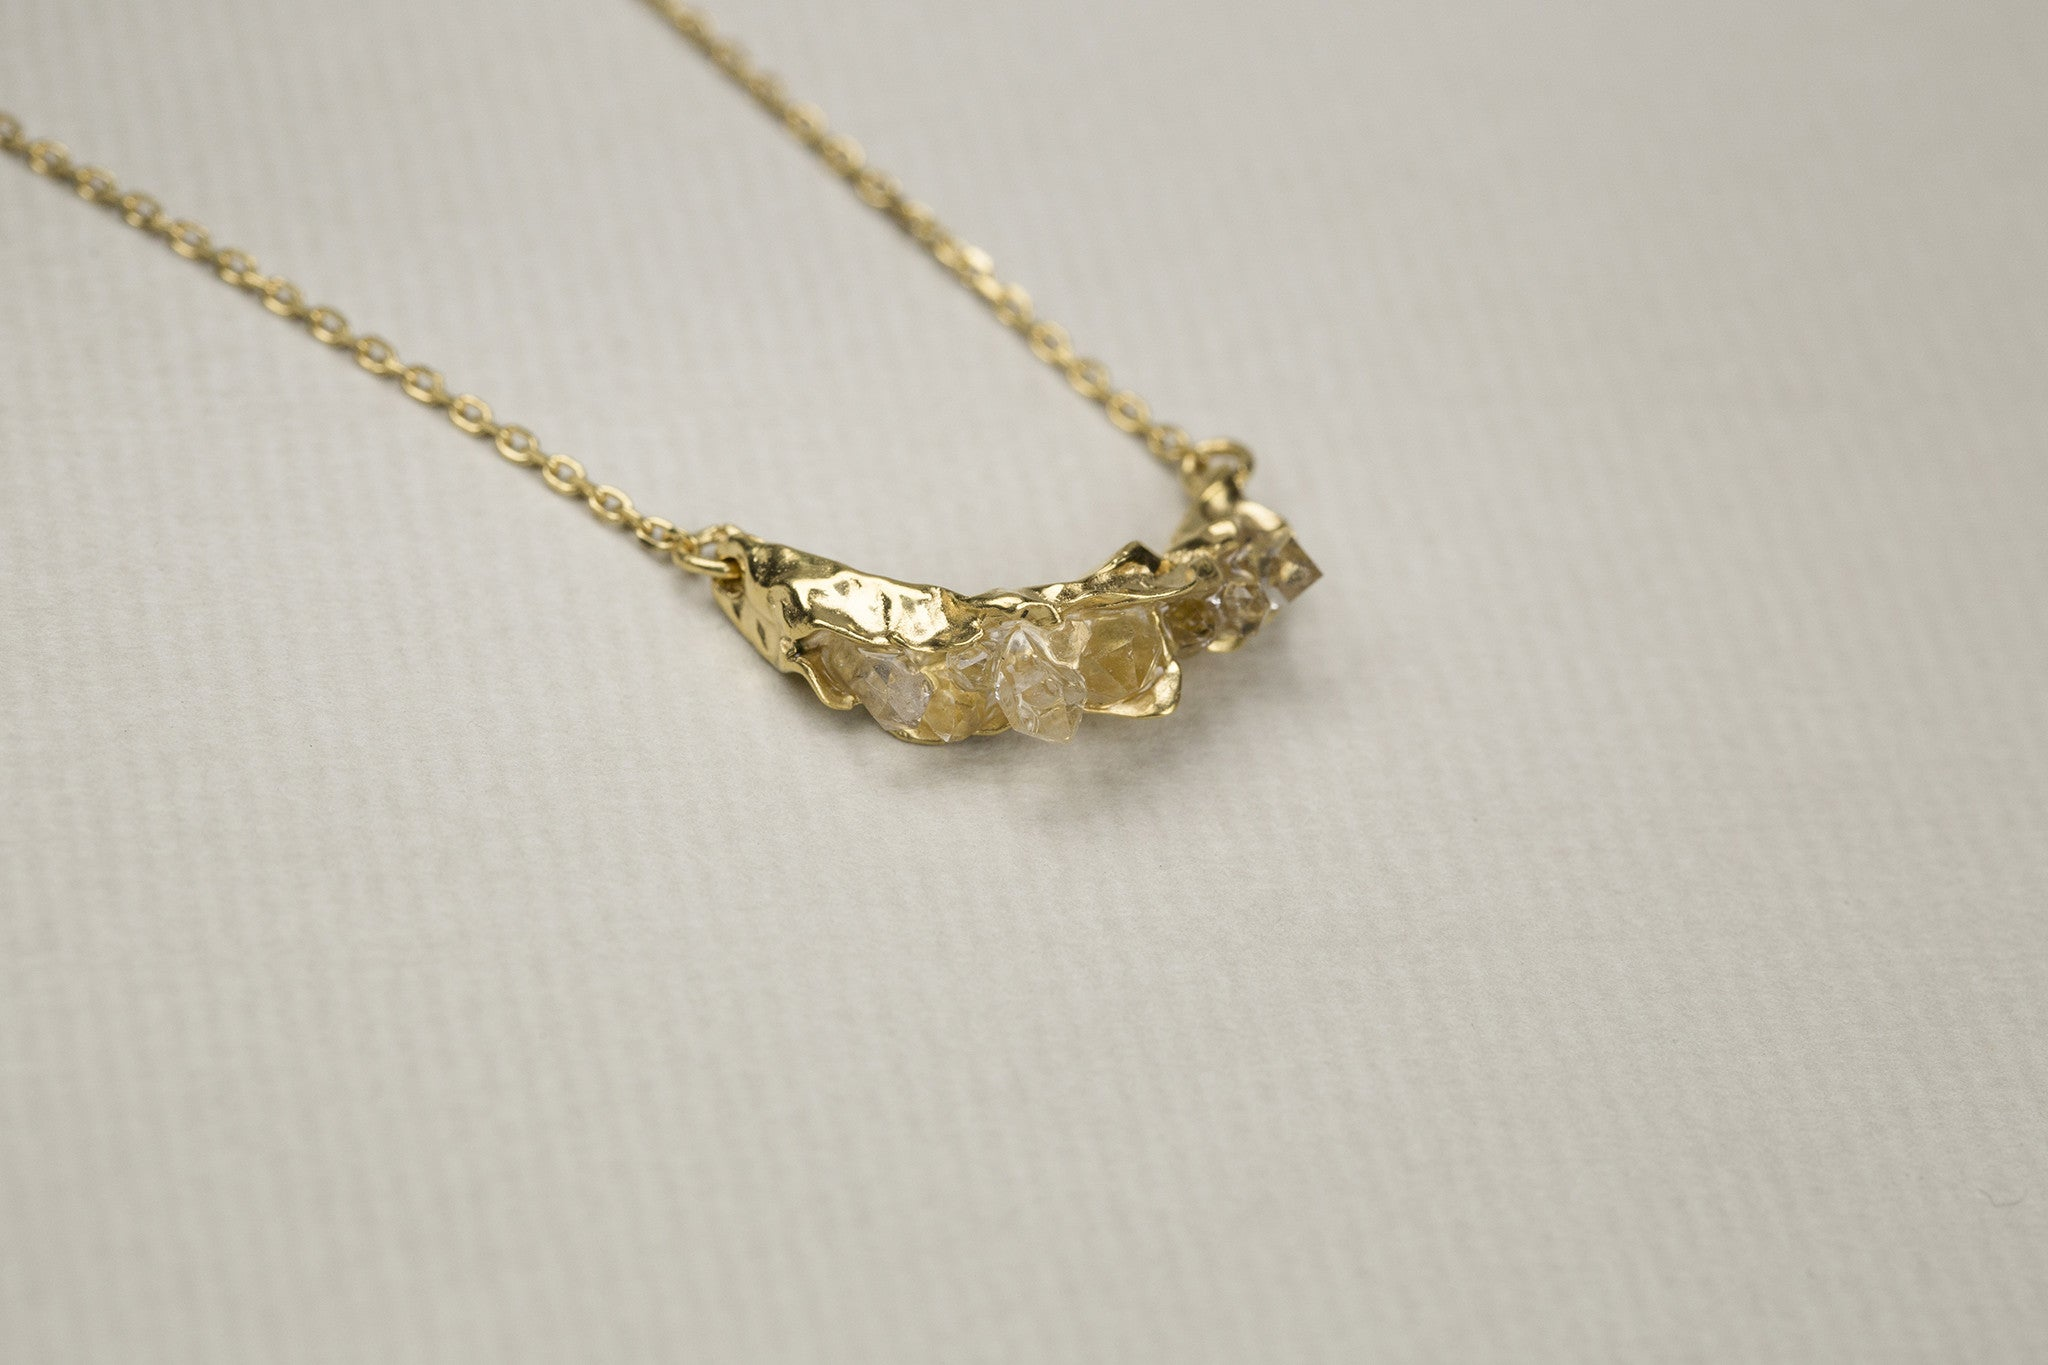 use din the necklace are herkimer diamonds - which are in fact exceptionally clear quartz